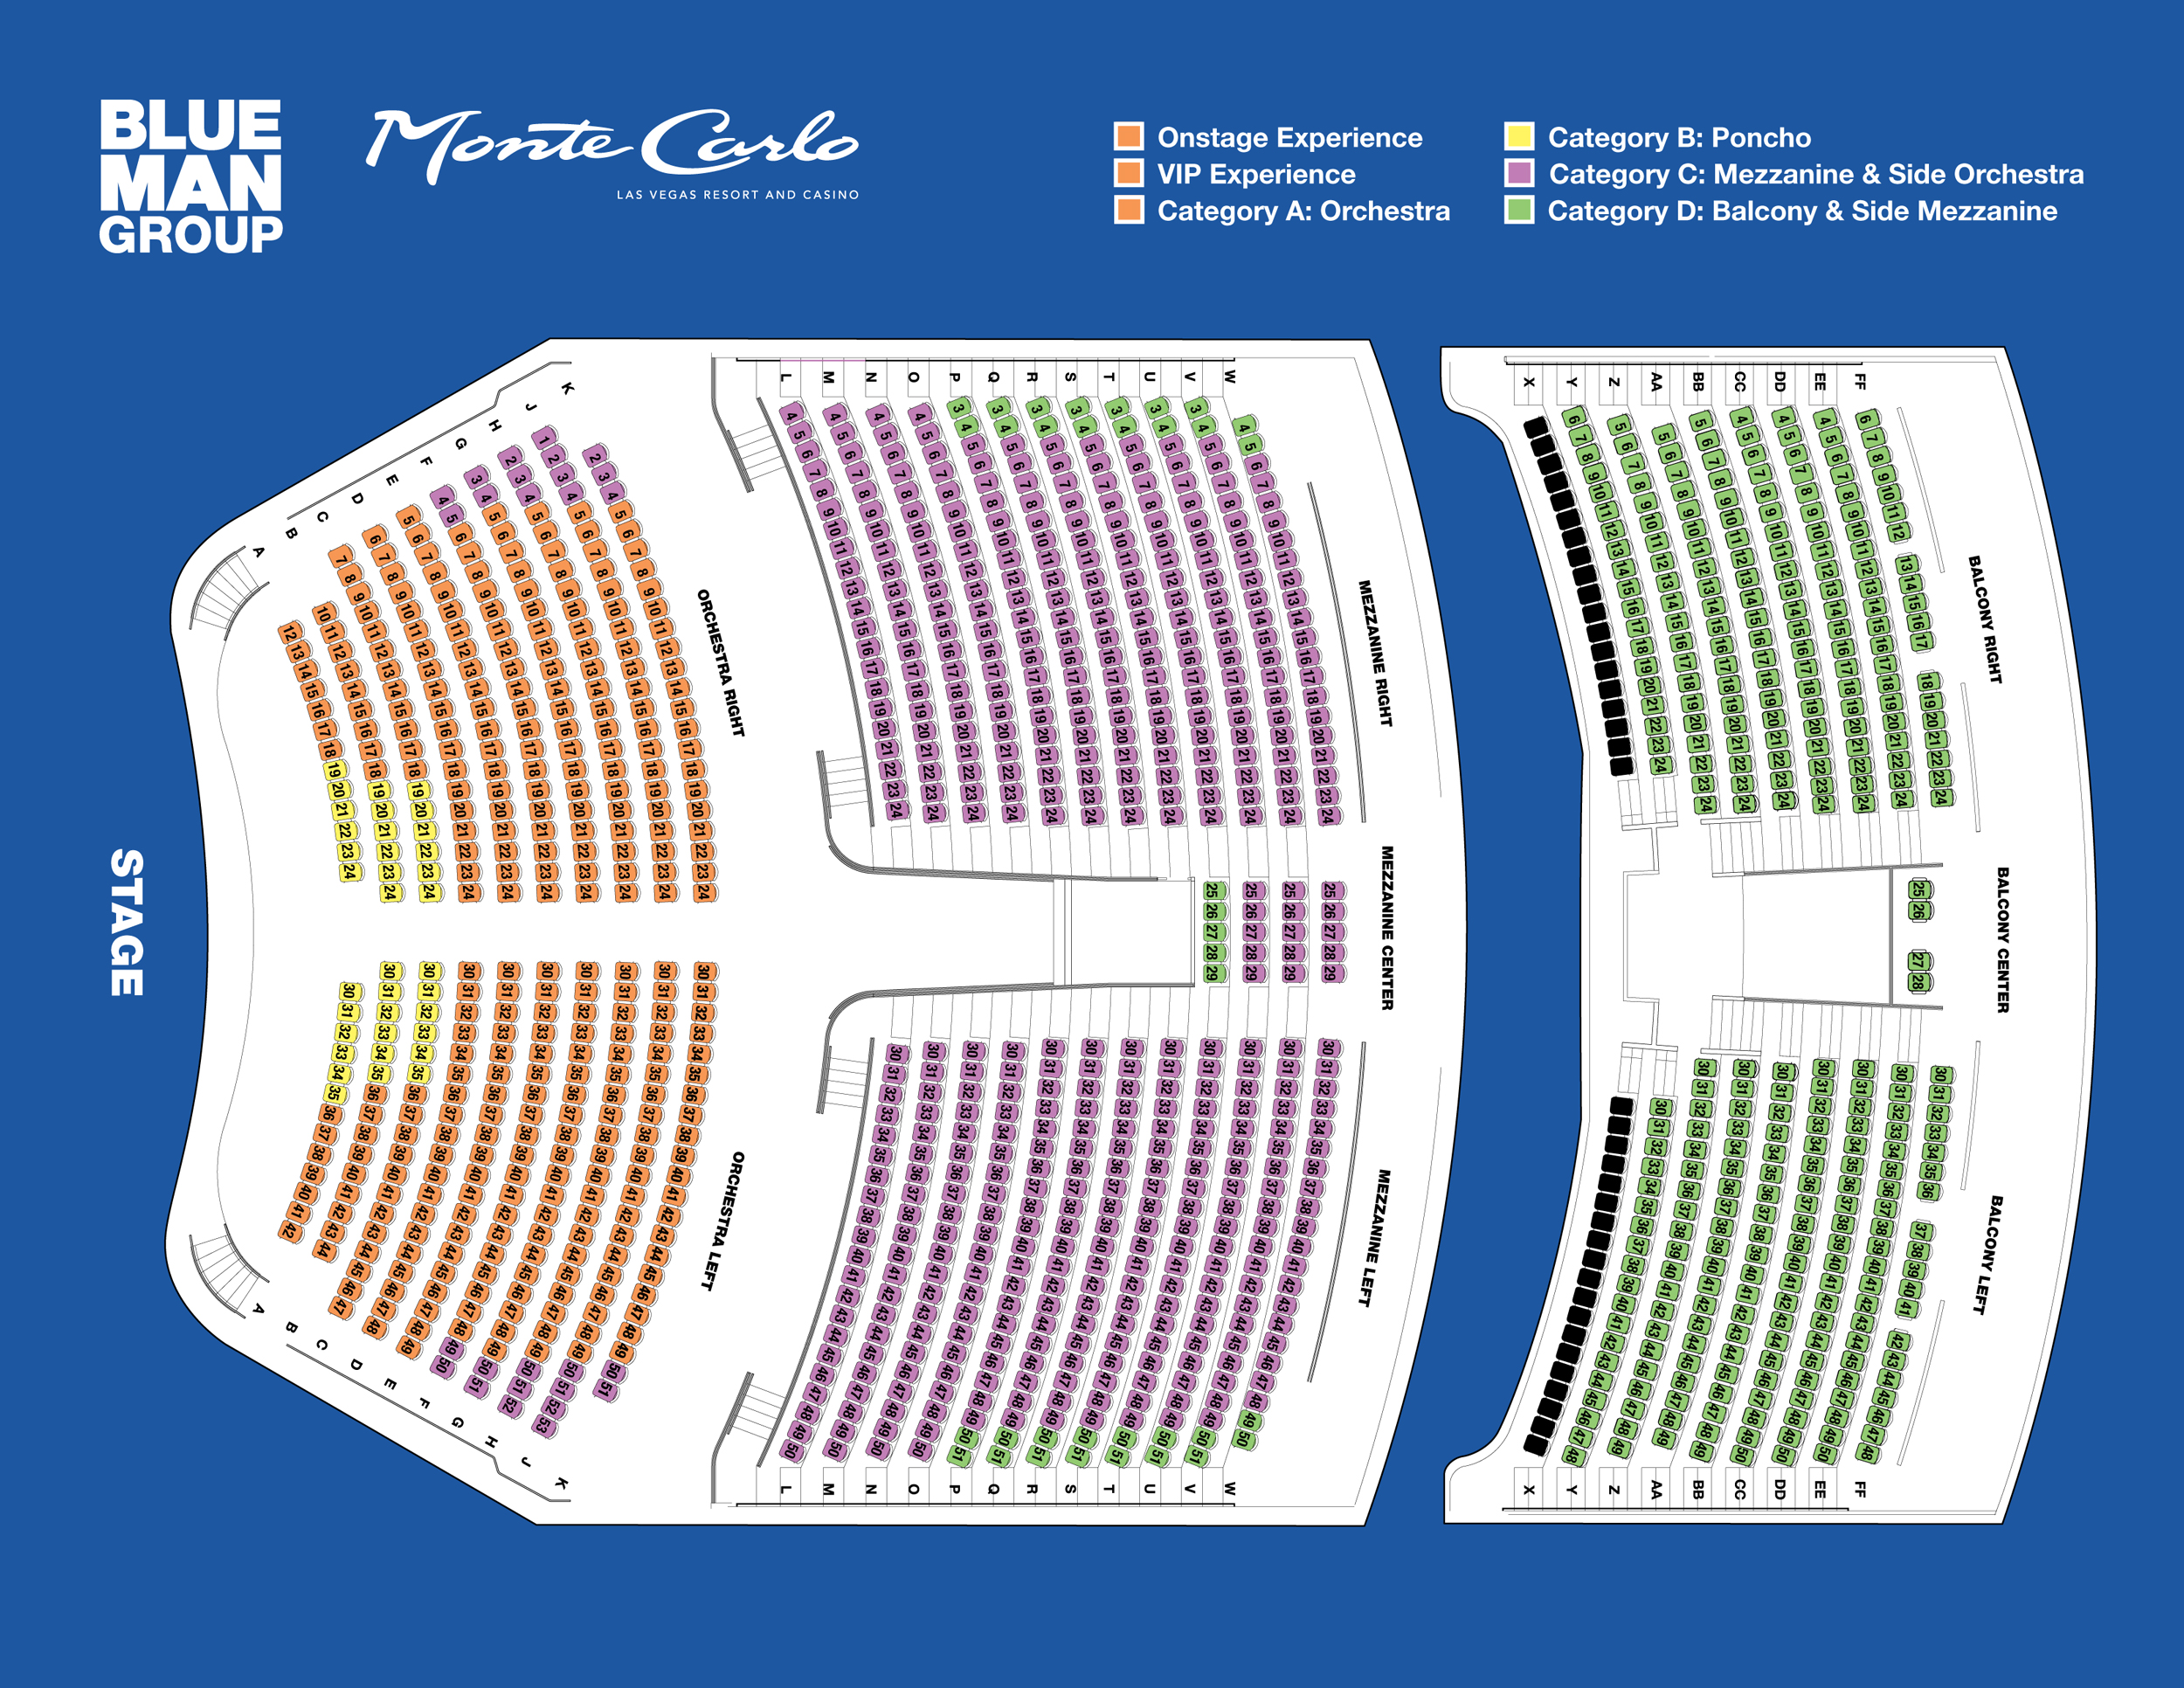 Park Theater Monte Carlo Seating Chart Las Vegas Resort And Tickets